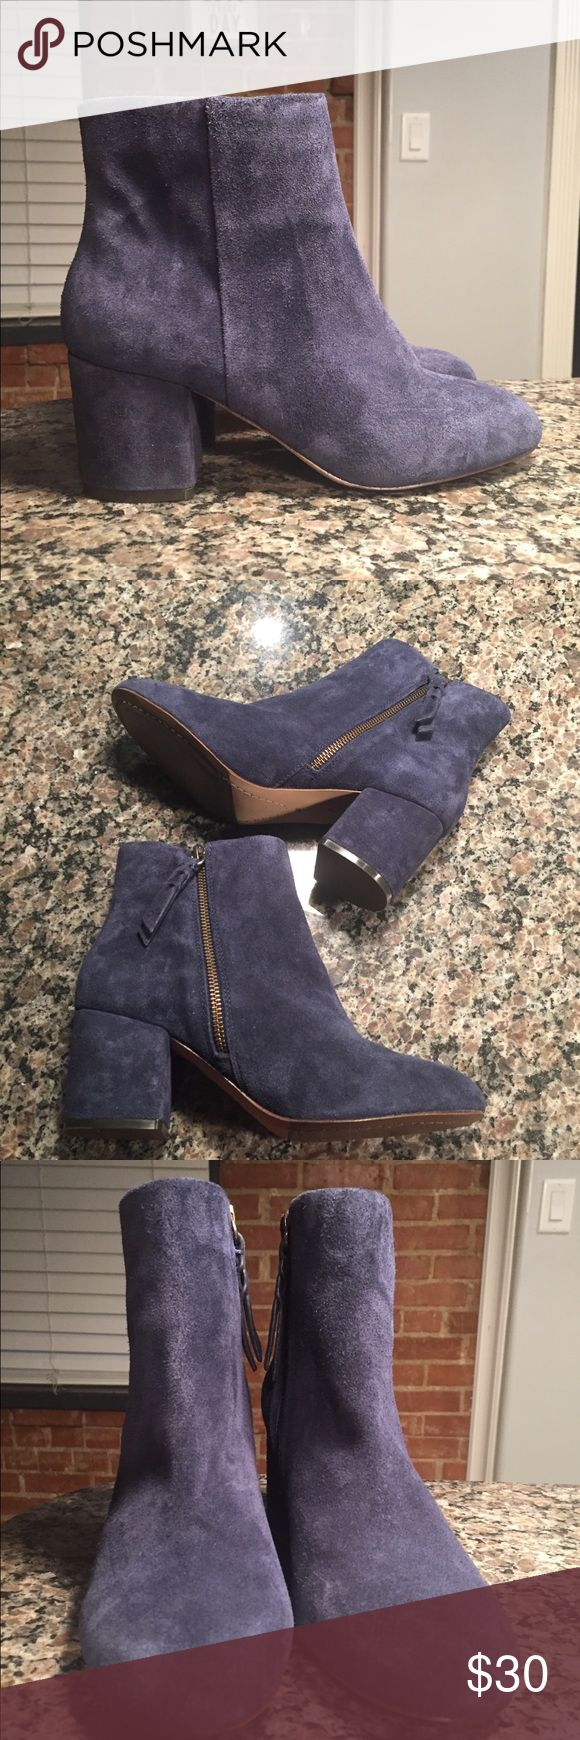 ✨Cute blue suede booties✨ Super cute blue Suede Booties for sale Never used (see bottom of shoe pic) The brand is called Splendid sold at Nordstrom  Size shoe is 7 Fits true to size (I am a 7.5 and it didn't fit me) Open to offers  Thanks for the shares and love 💕 Splendid Shoes Ankle Boots & Booties